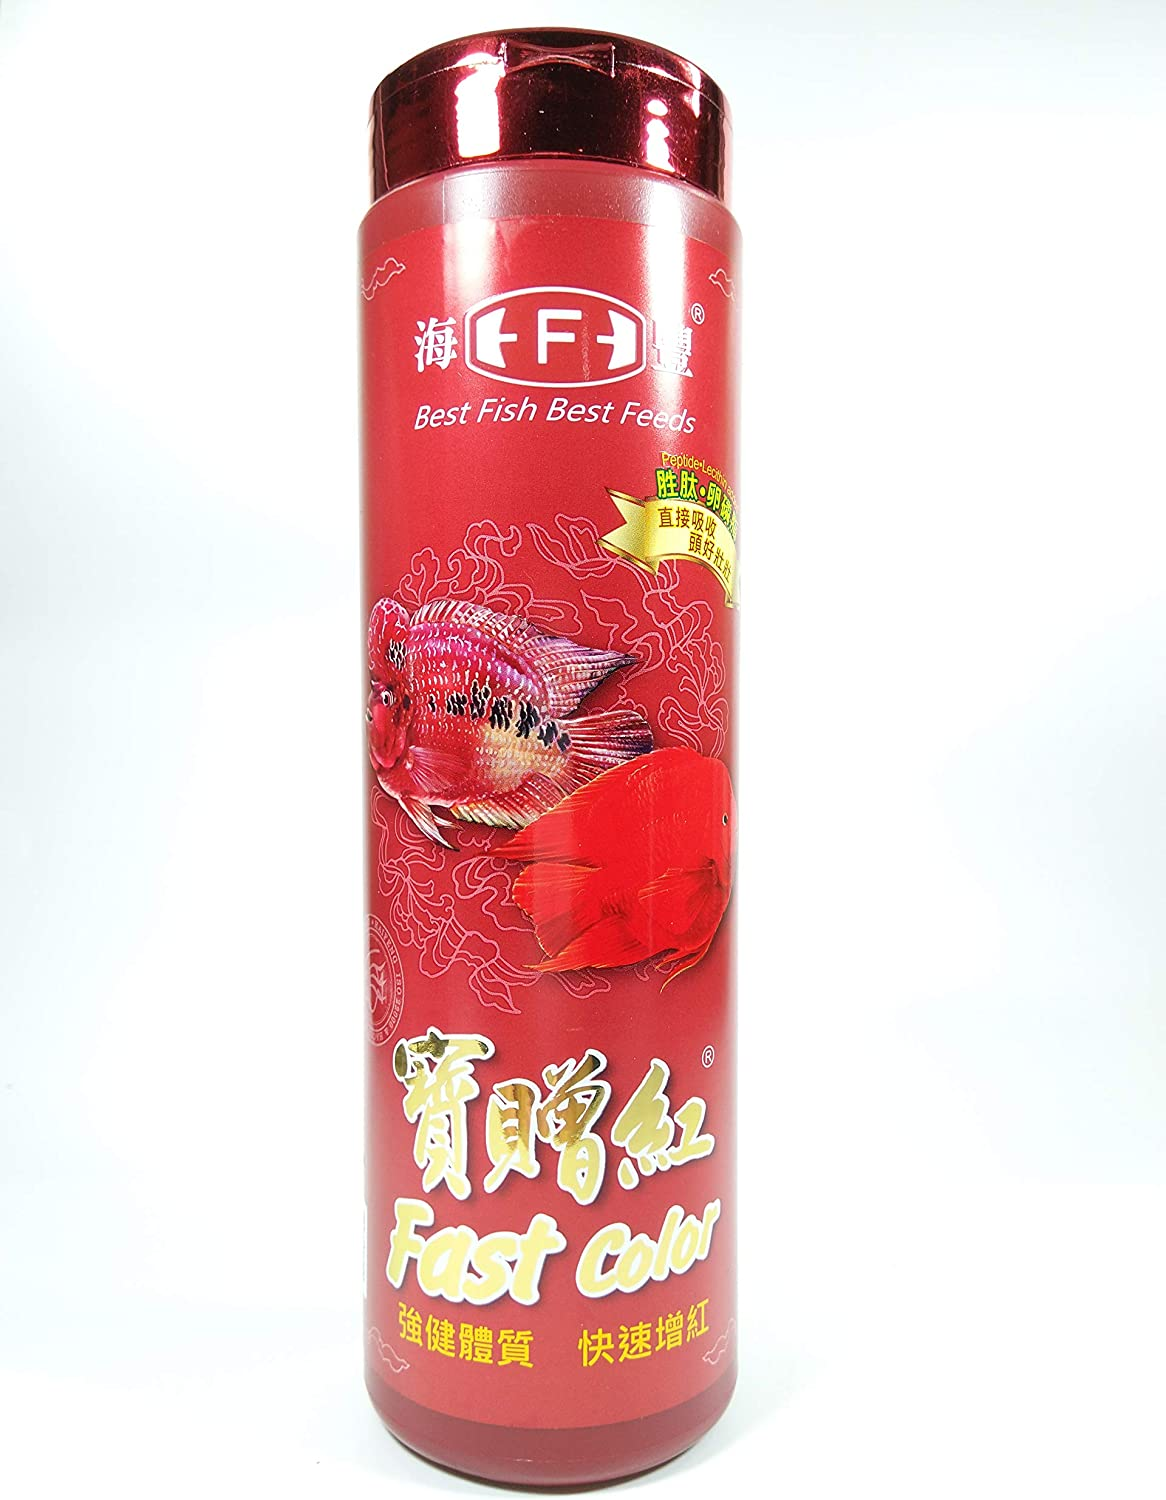 Hai Feng Fast Color Best Food Peptide Lecithin Added Floating N.W.235g for Red Parrot, Cichlid, Discus & Tropical Fish, Small